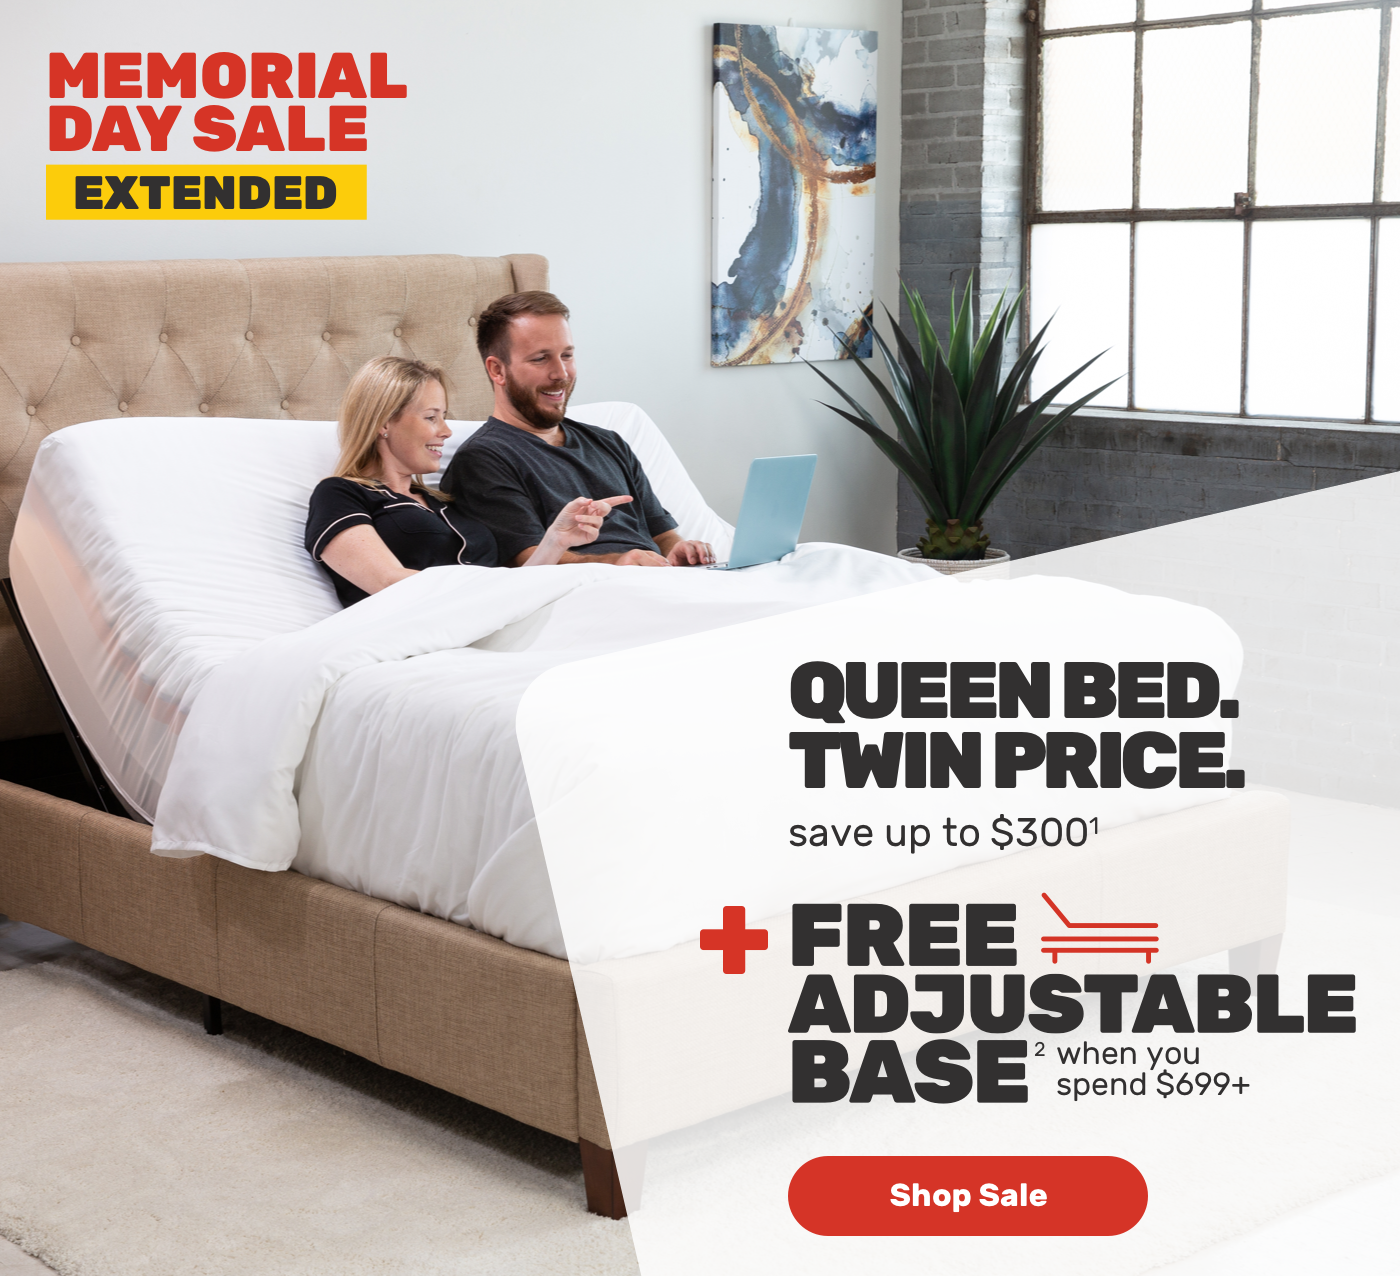 MEMORIAL DAY Queen extended Queen bed Twin price save upto $300 - Free adjustable base when you spend $699